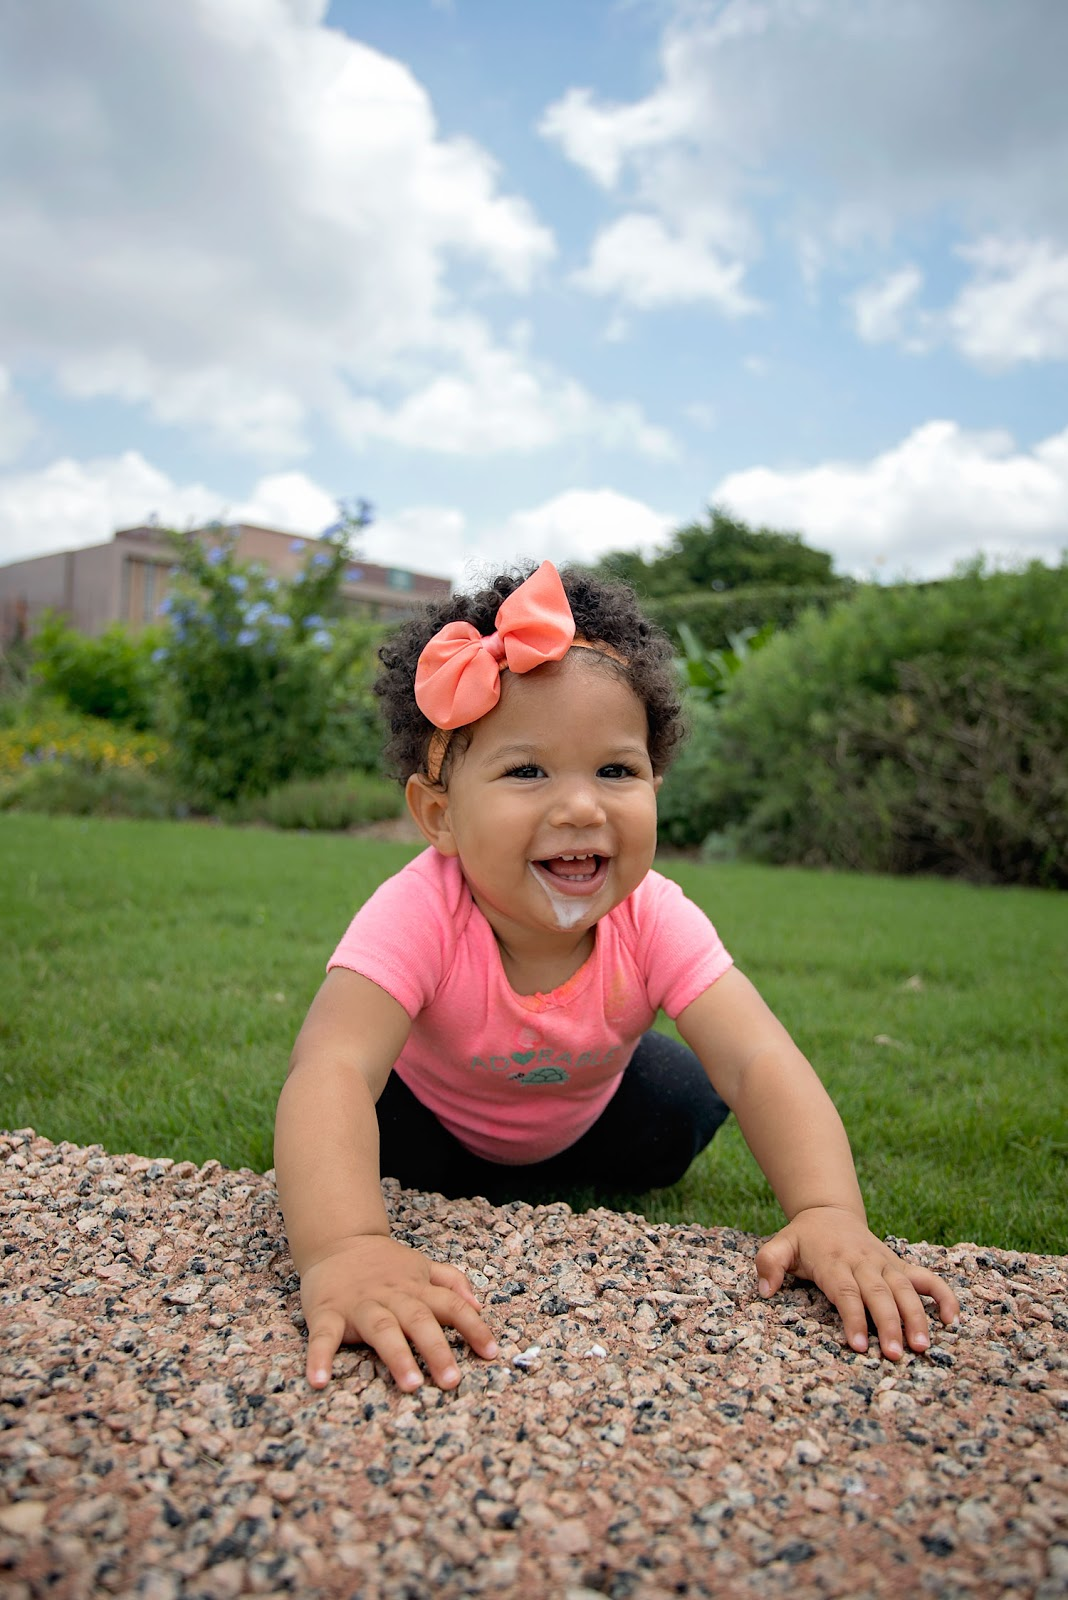 Biracial baby girl playing in the grass.